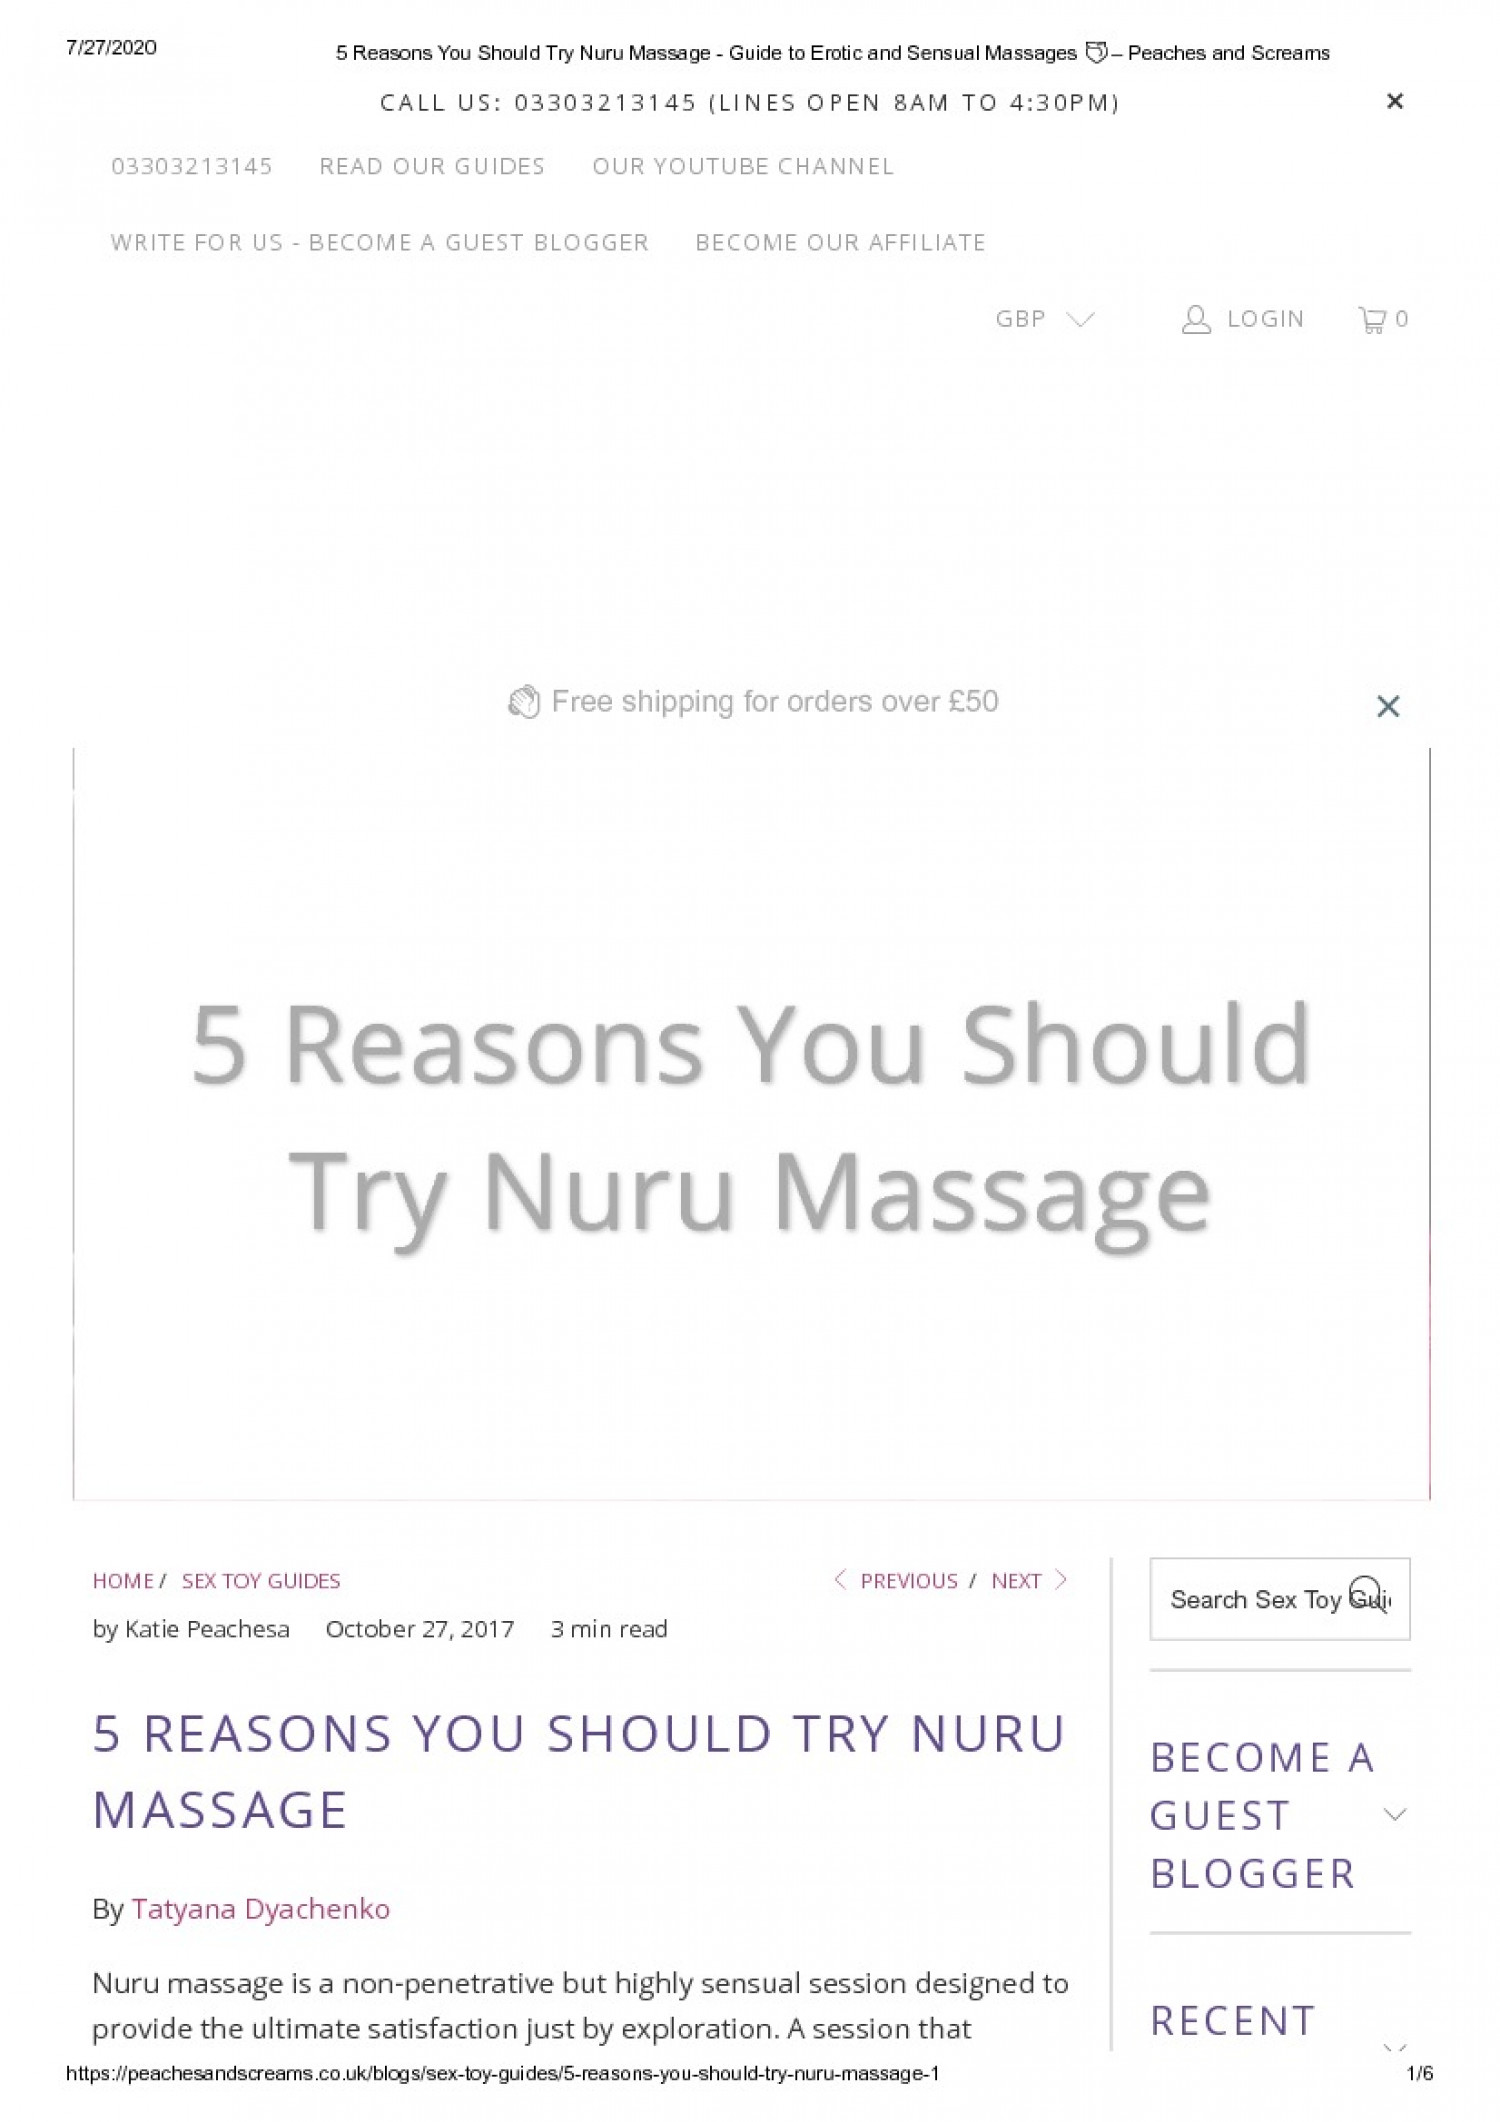 5 REASONS YOU SHOULD TRY NURU MASSAGE Infographic